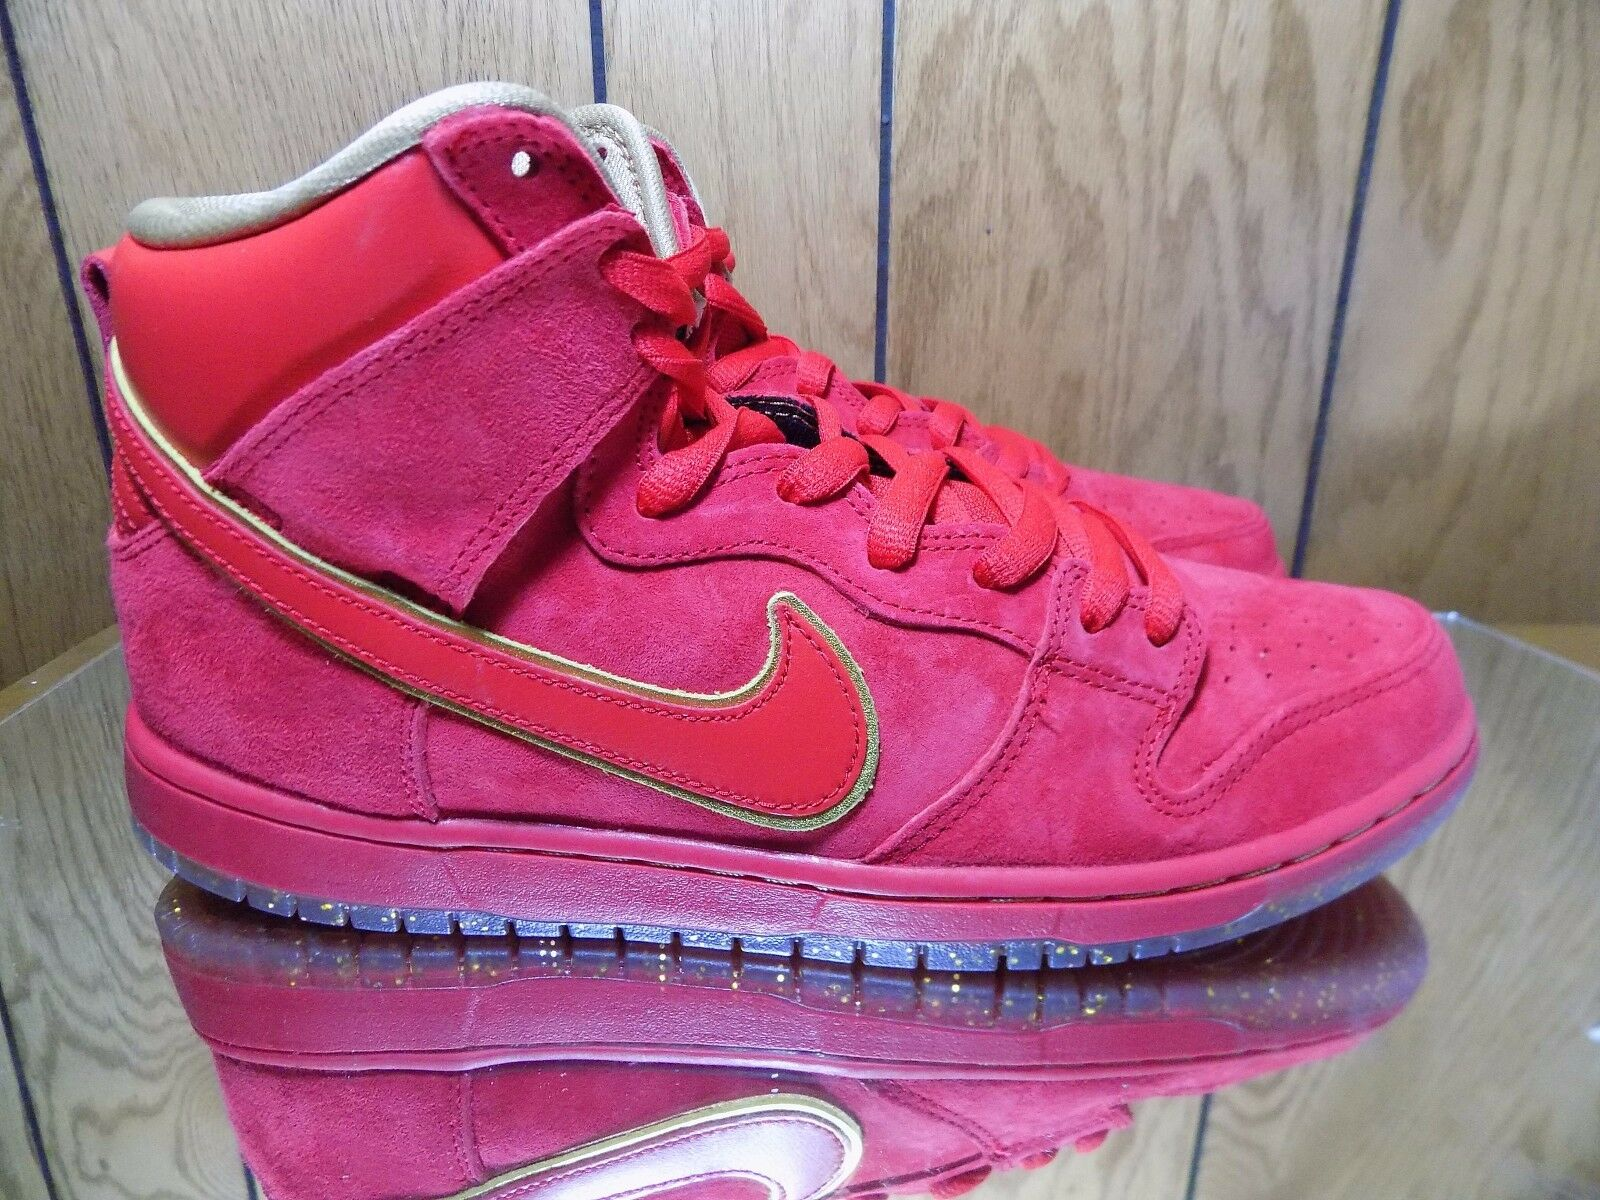 Nike SB Dunk High Low CNY Chinese New Year YOTH Sz 10